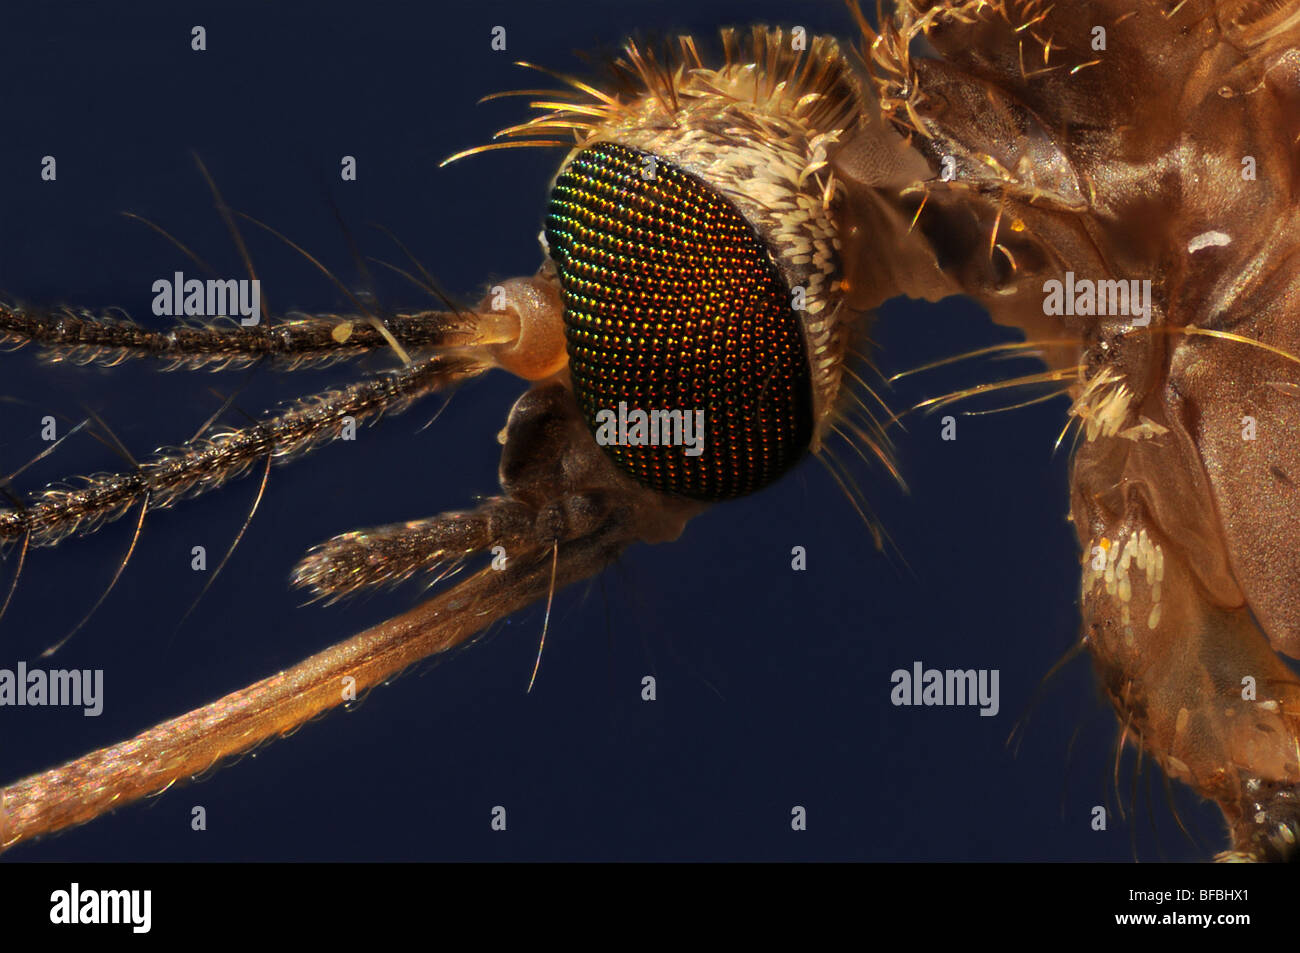 The head of a mosquito, culex pipiens taken through a microscope Stock Photo